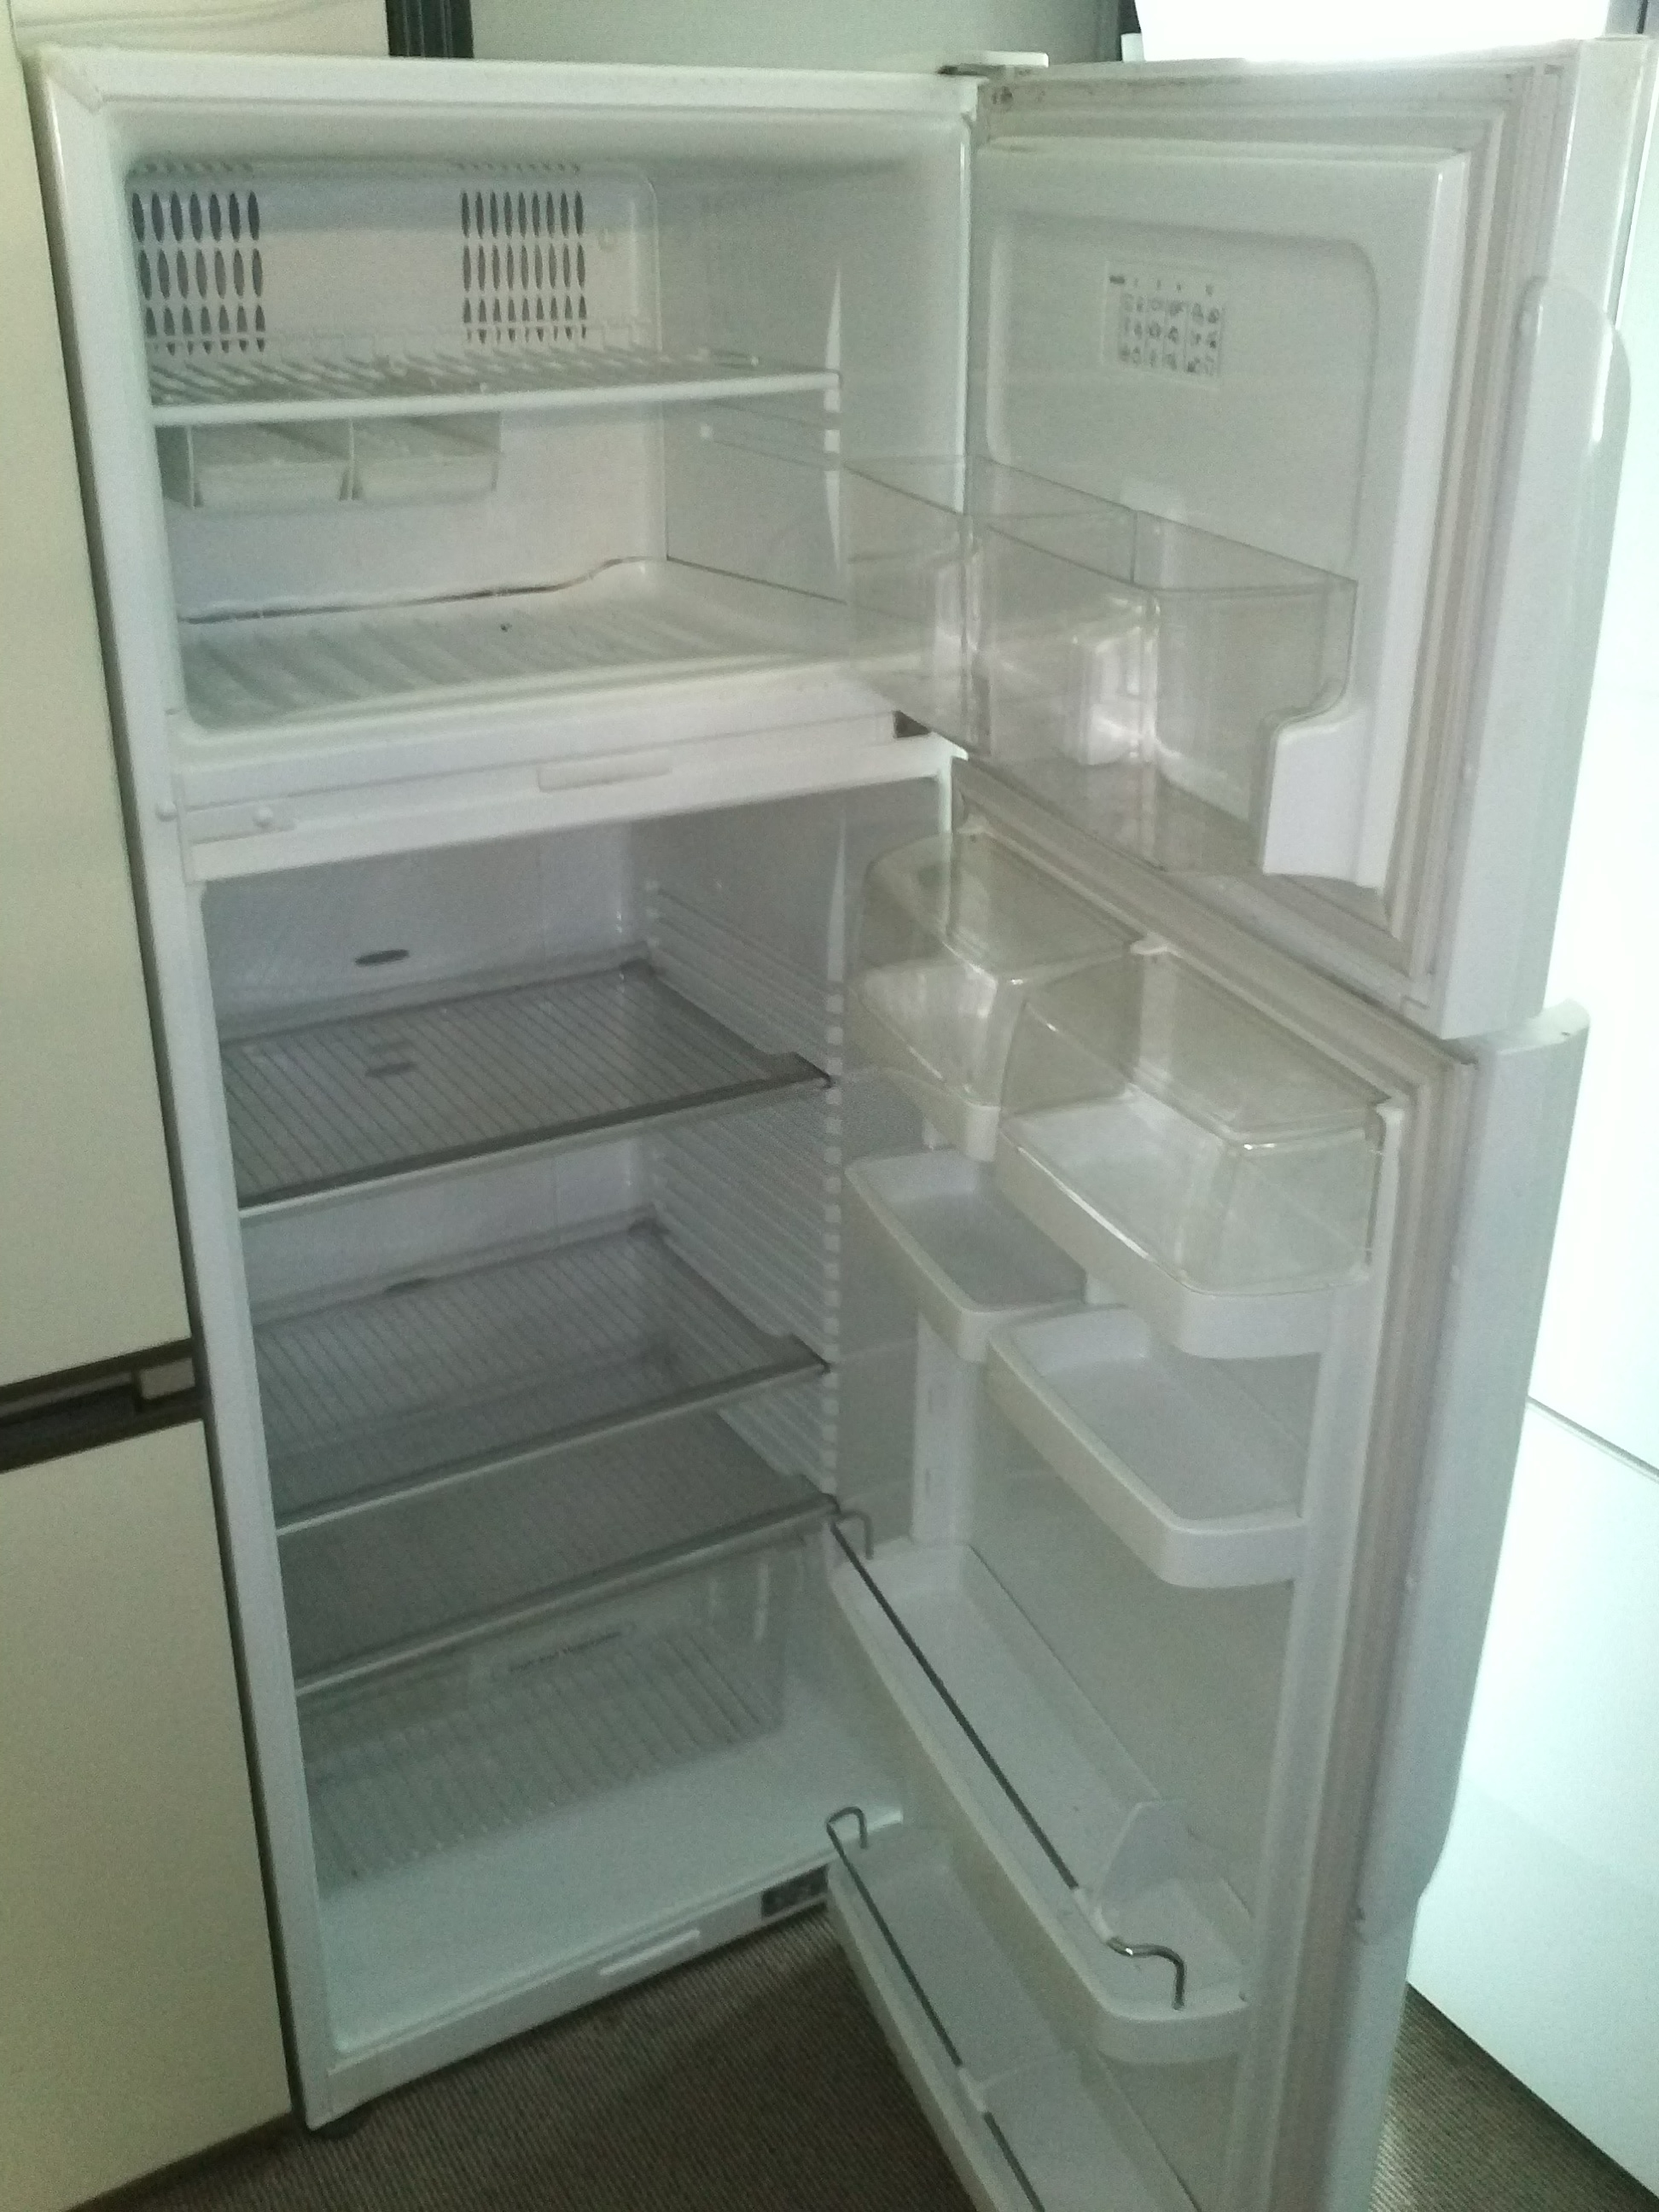 fridge-freezer-fisher-and-paykel-active-smart-e381t-open